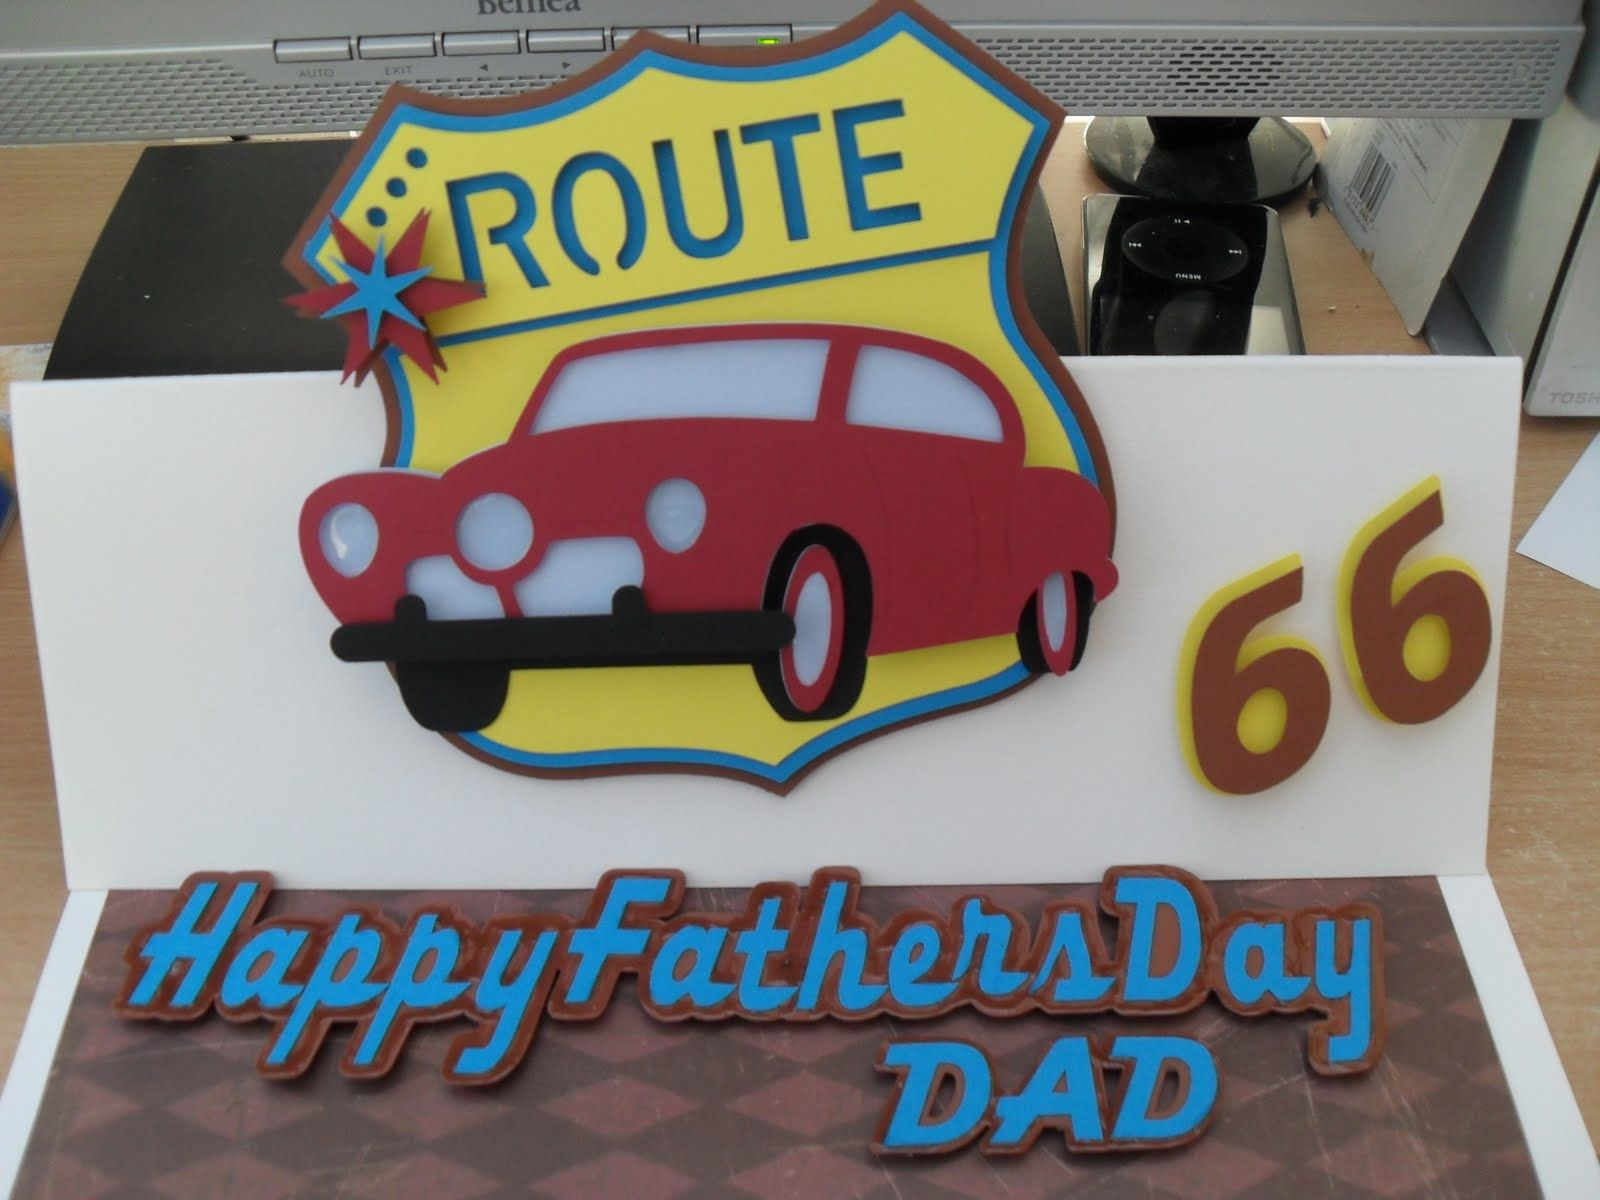 Cricut fathers day card ideas fathers day cards cards